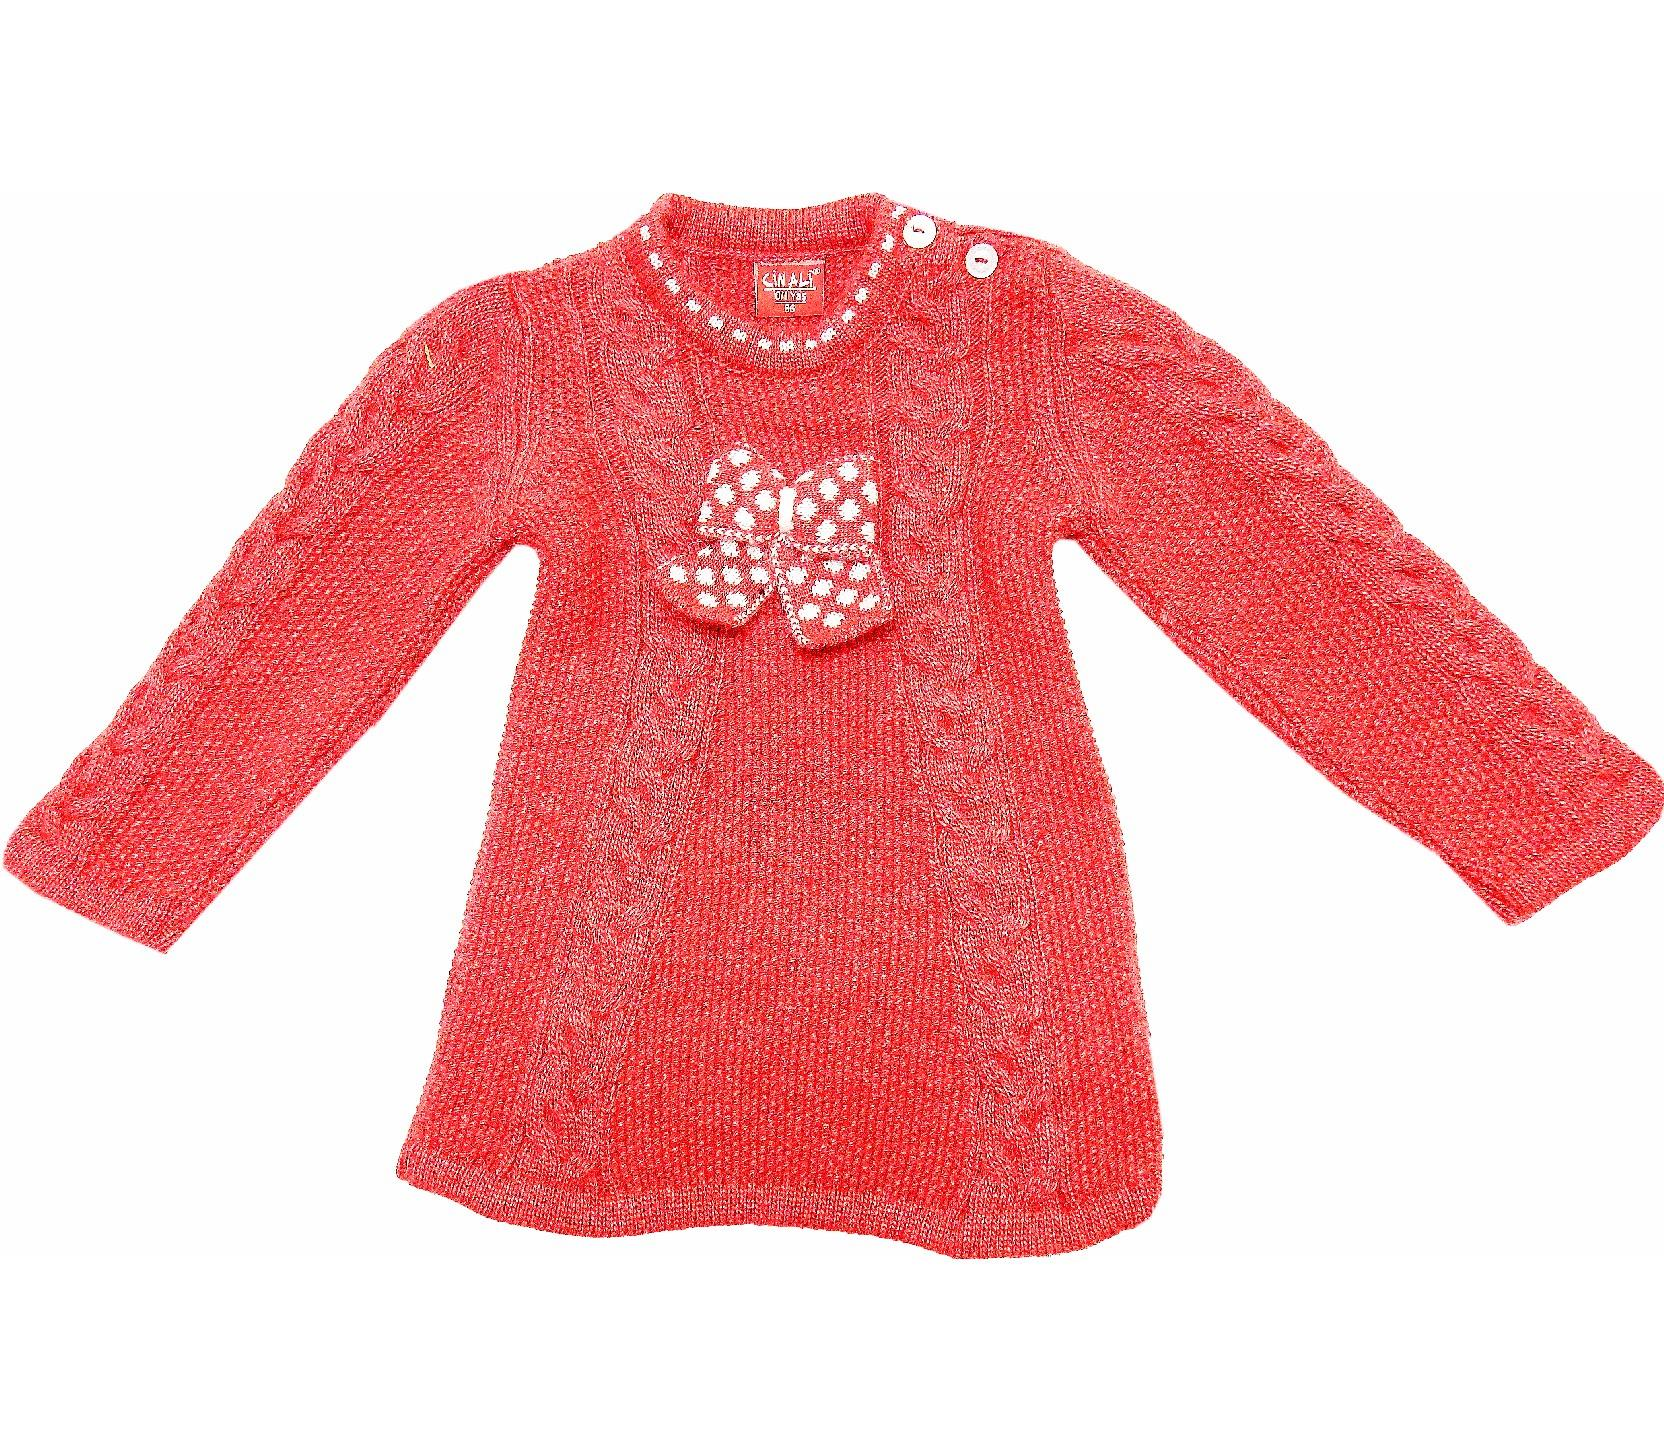 WHOLESALE RIBBON APPLIQUE KNITTED DESIGN TUNIC SWEATER FOR GIRL/BABY AND KIDS (1-2-3 AGE)